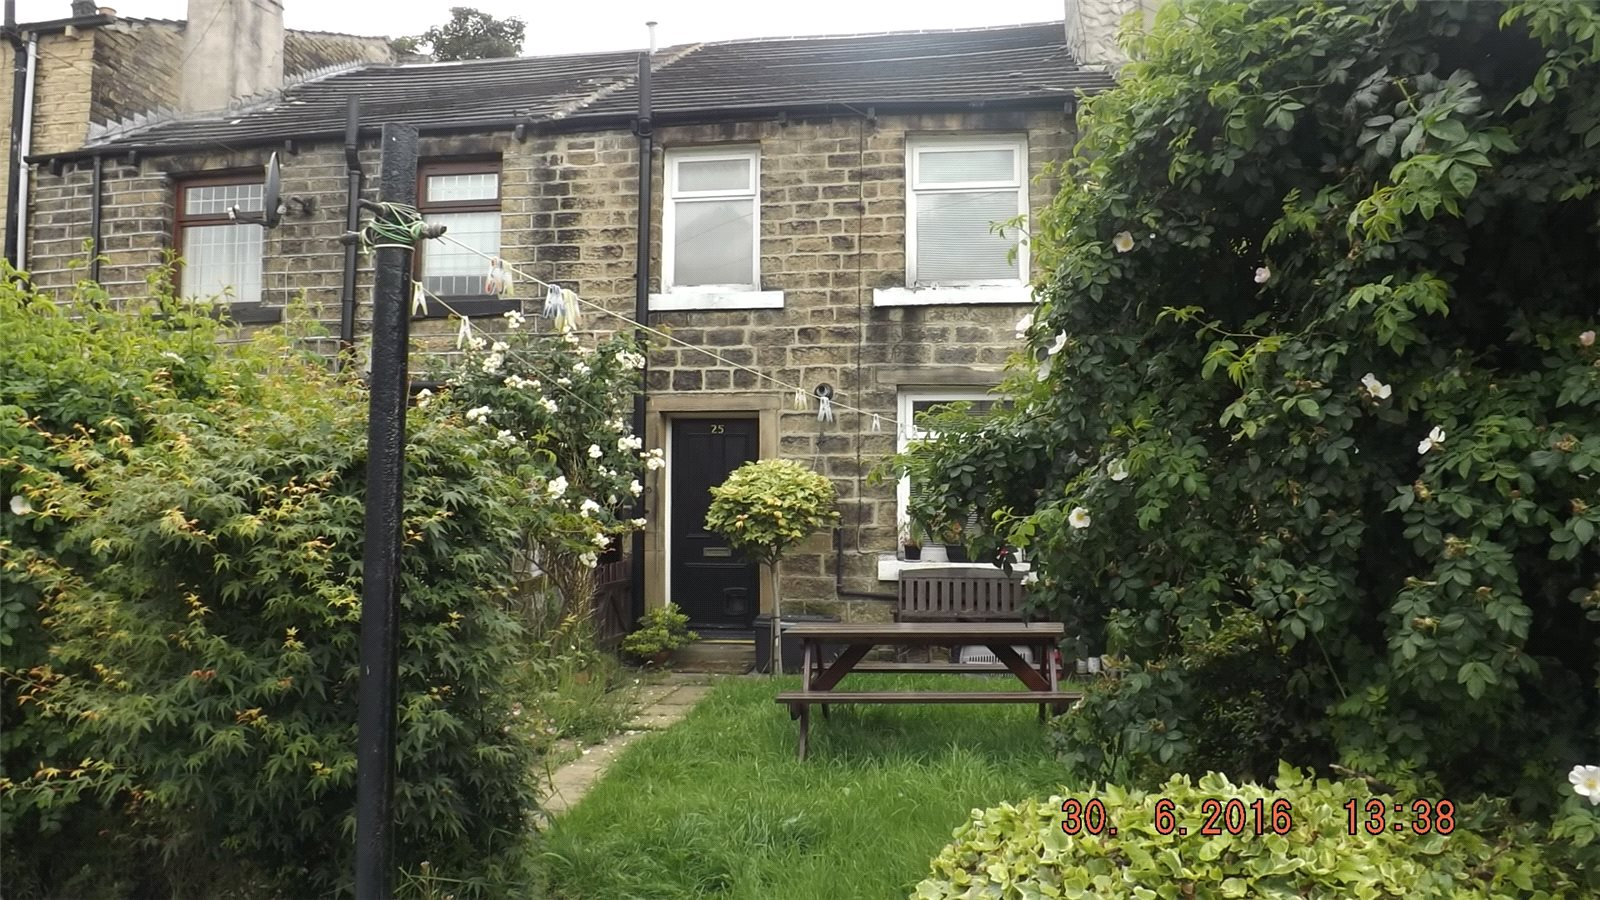 West View, Paddock, Huddersfield HD1